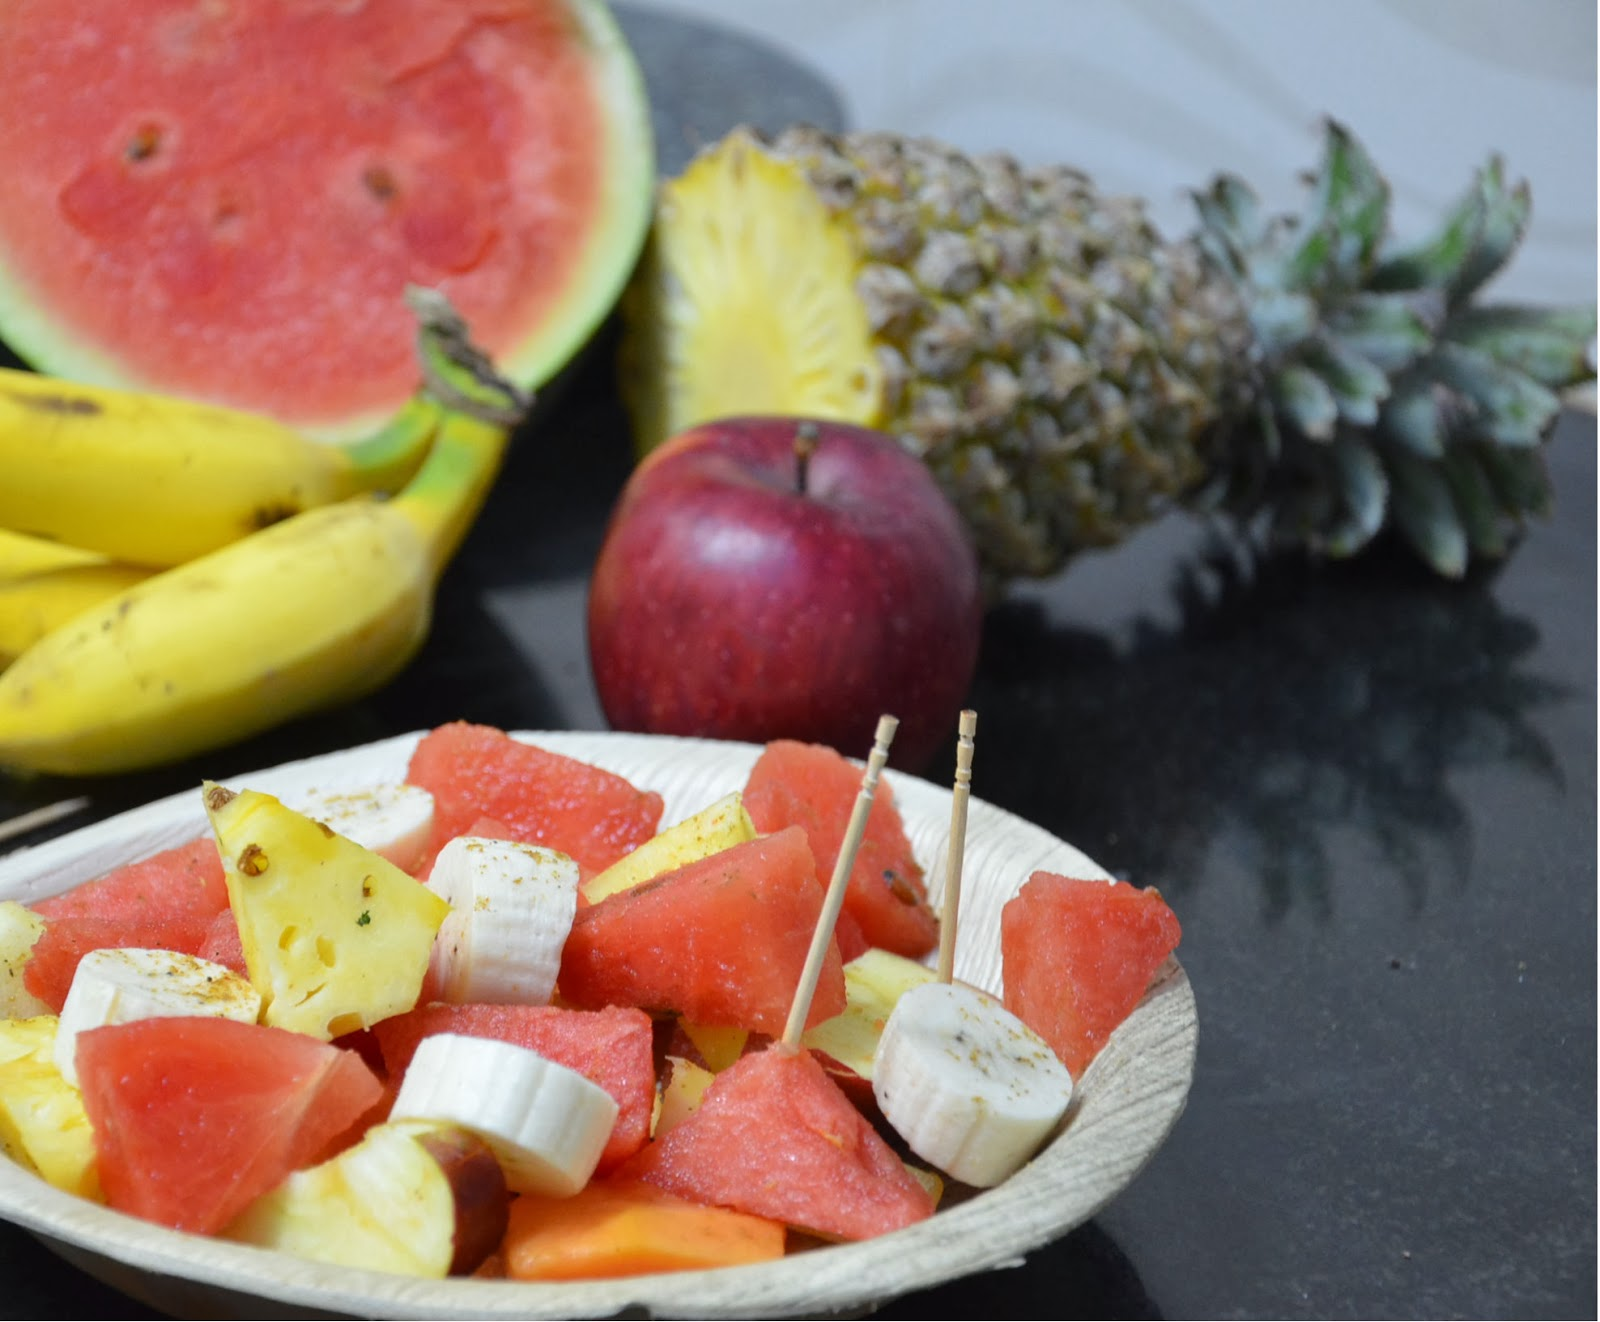 fruit meal, comfortable meal, nutritious meal, fruit bowl, fruit salad, mixed fruits